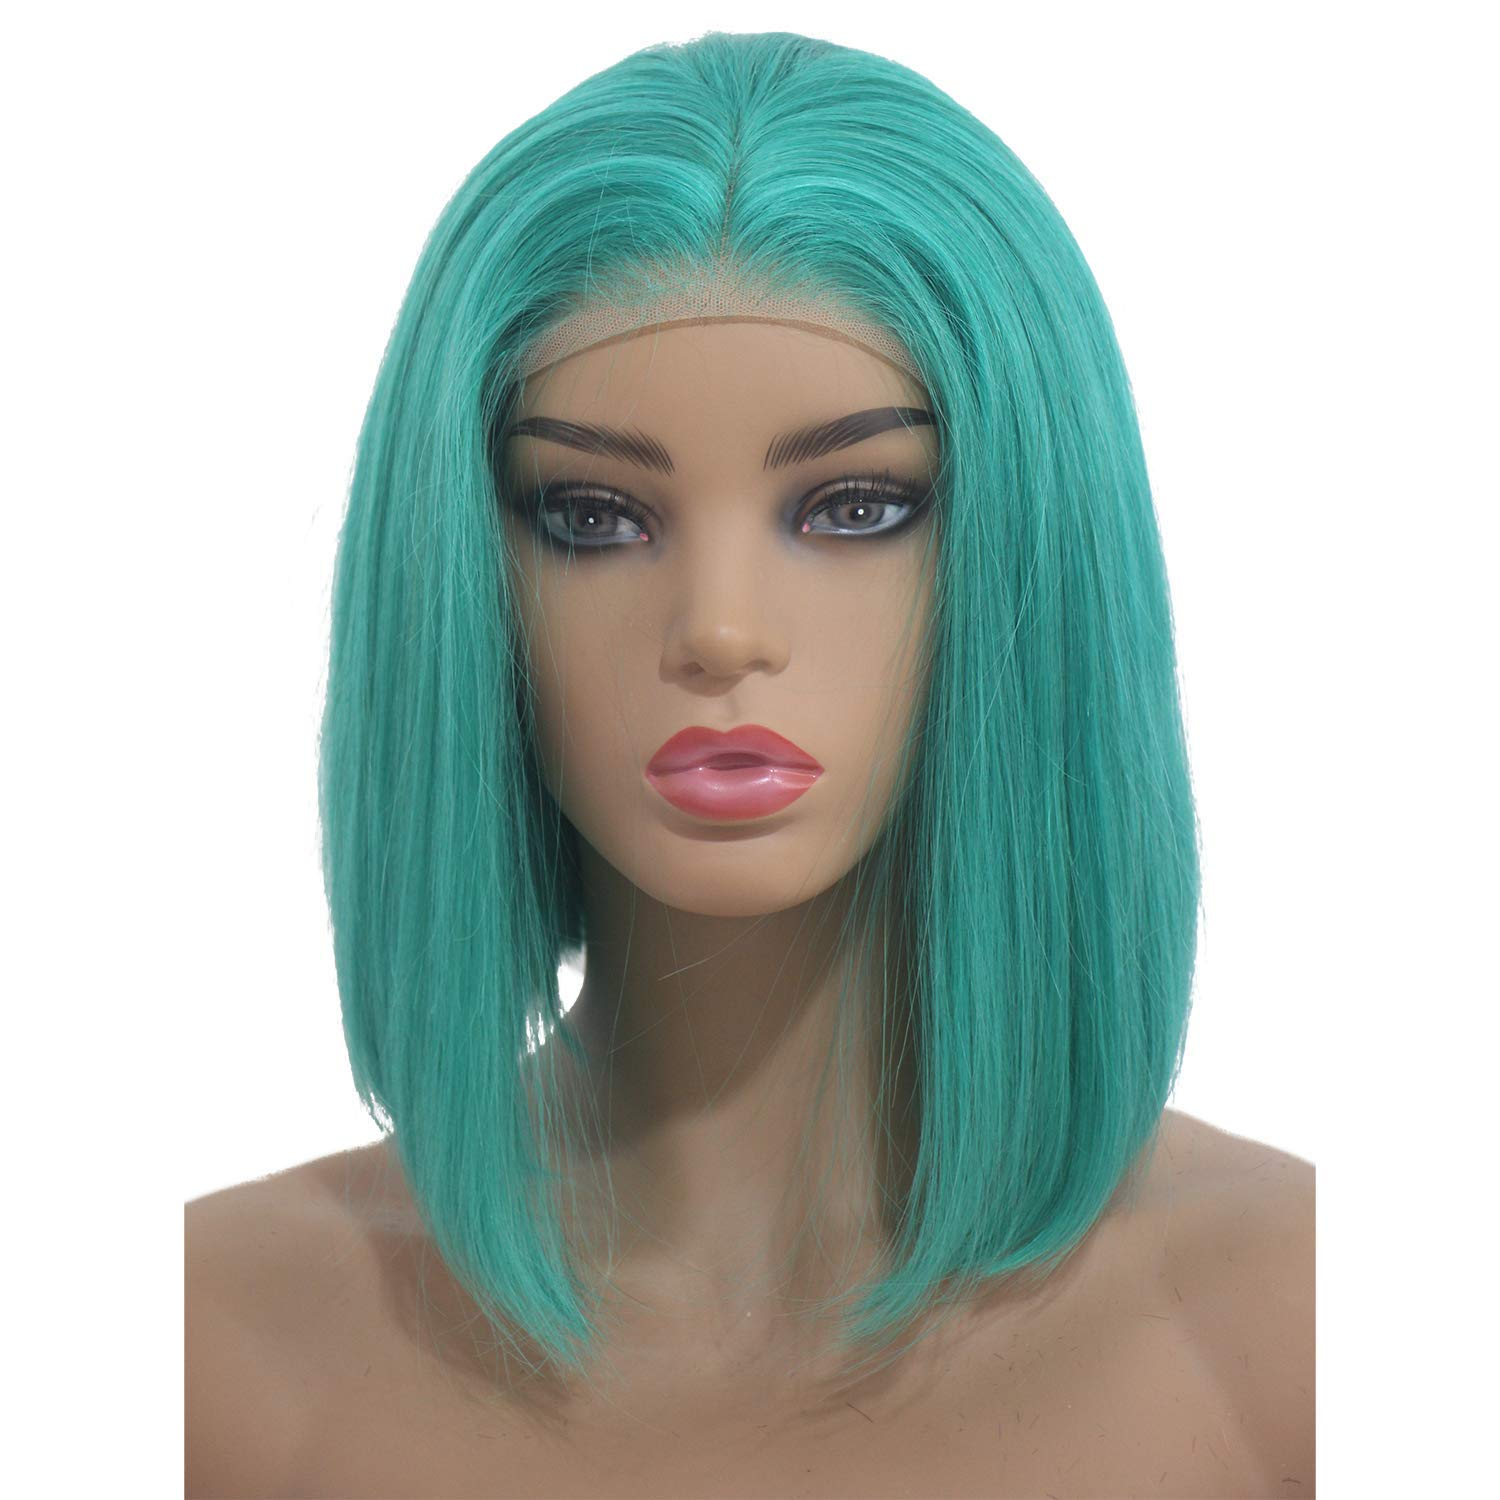 Bob Wigs Lake BLue Brazilian Virgin Human Hair Lace Front Pre Plucked with Baby Hair for Women Glueless 13x4 Straight Short Bob Wig Bleached Knot Middle Part Cut Bob Colored